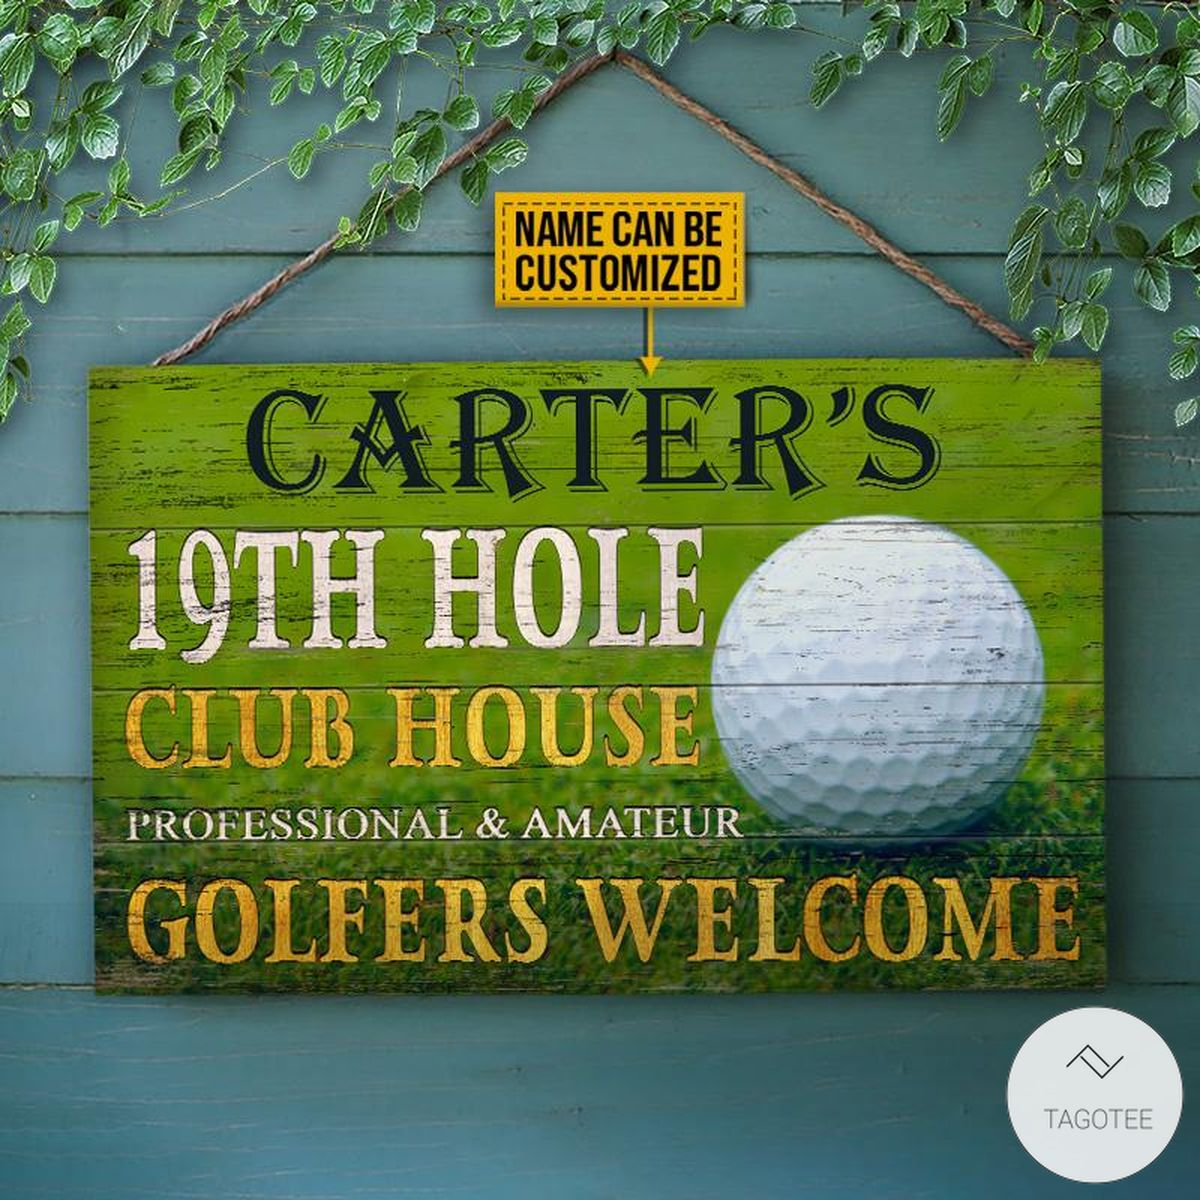 Personalized-Golf-19th-Hole-Club-House-Golfers-Welcome-Rectangle-Wood-Sign-x